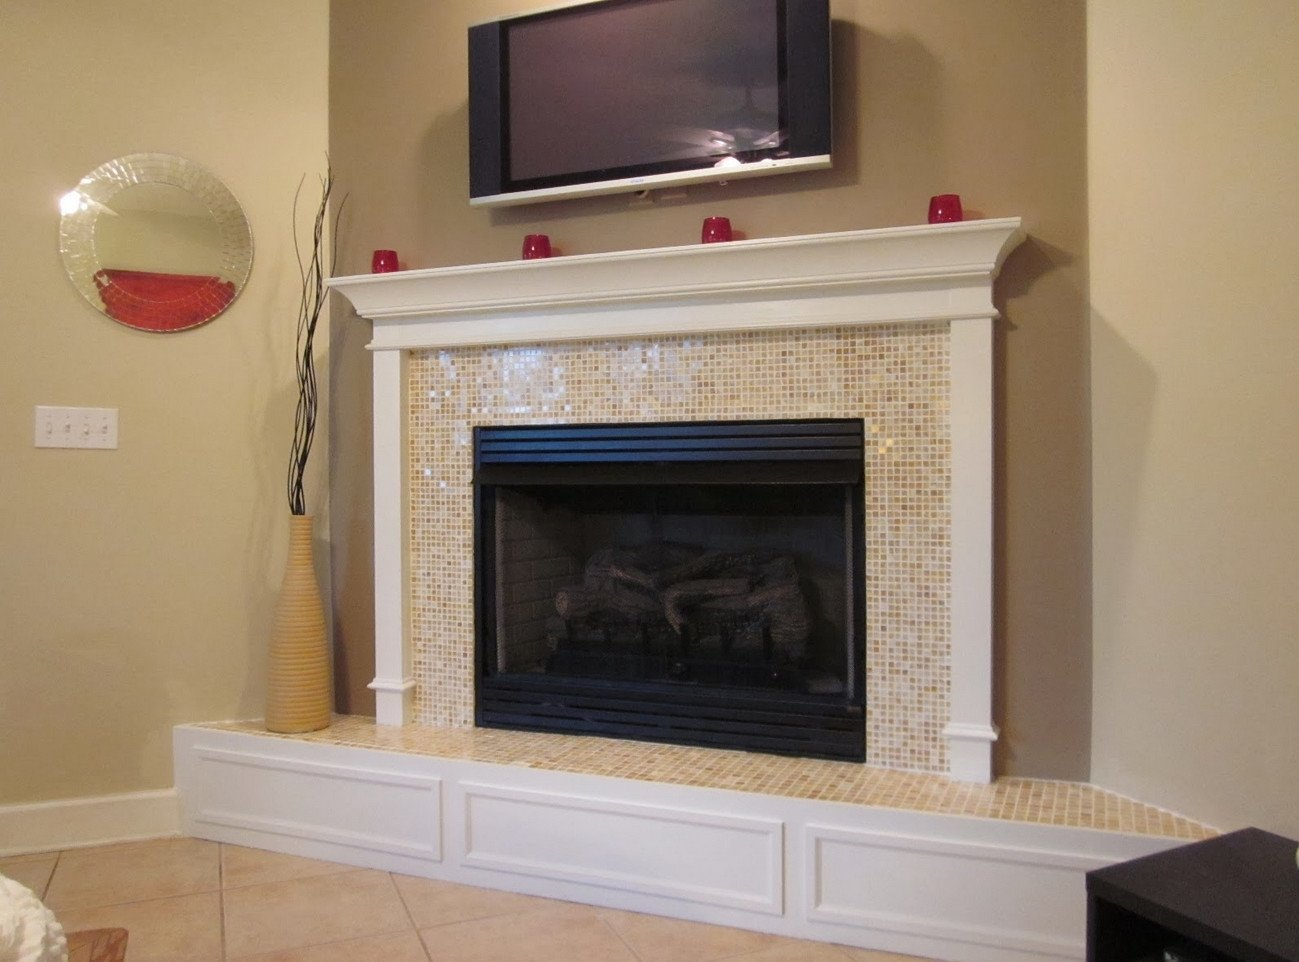 10 Most Recommended Fireplace Mantels And Surrounds Ideas interior ideas stunning fireplace mantels and surround ideas for 2020